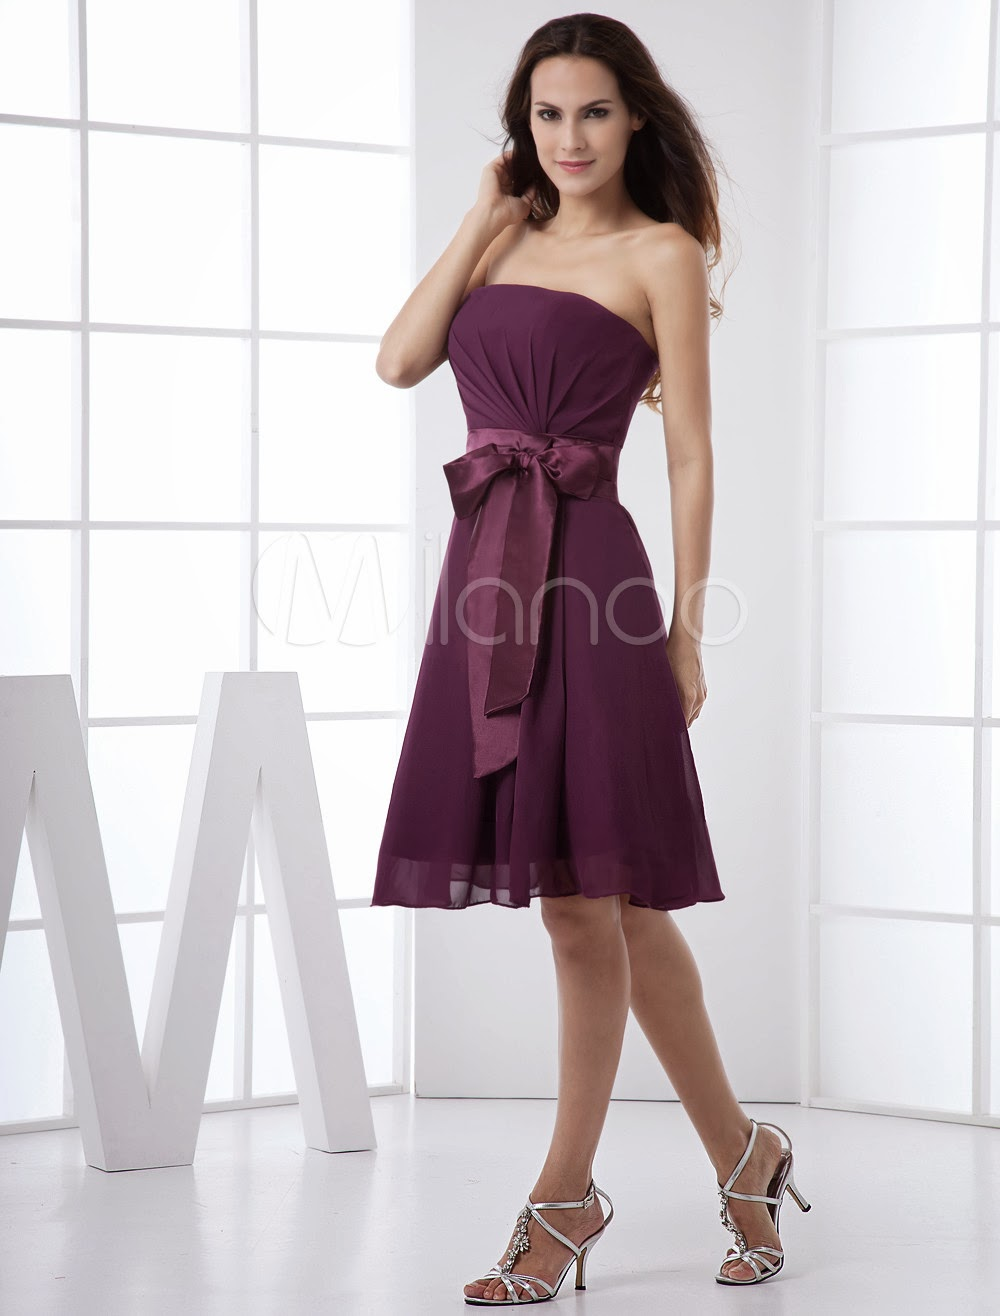 China Wholesale Dresses - Grape Strapless Sash Satin Chiffon Summer Homecoming Bridesmaid Dress